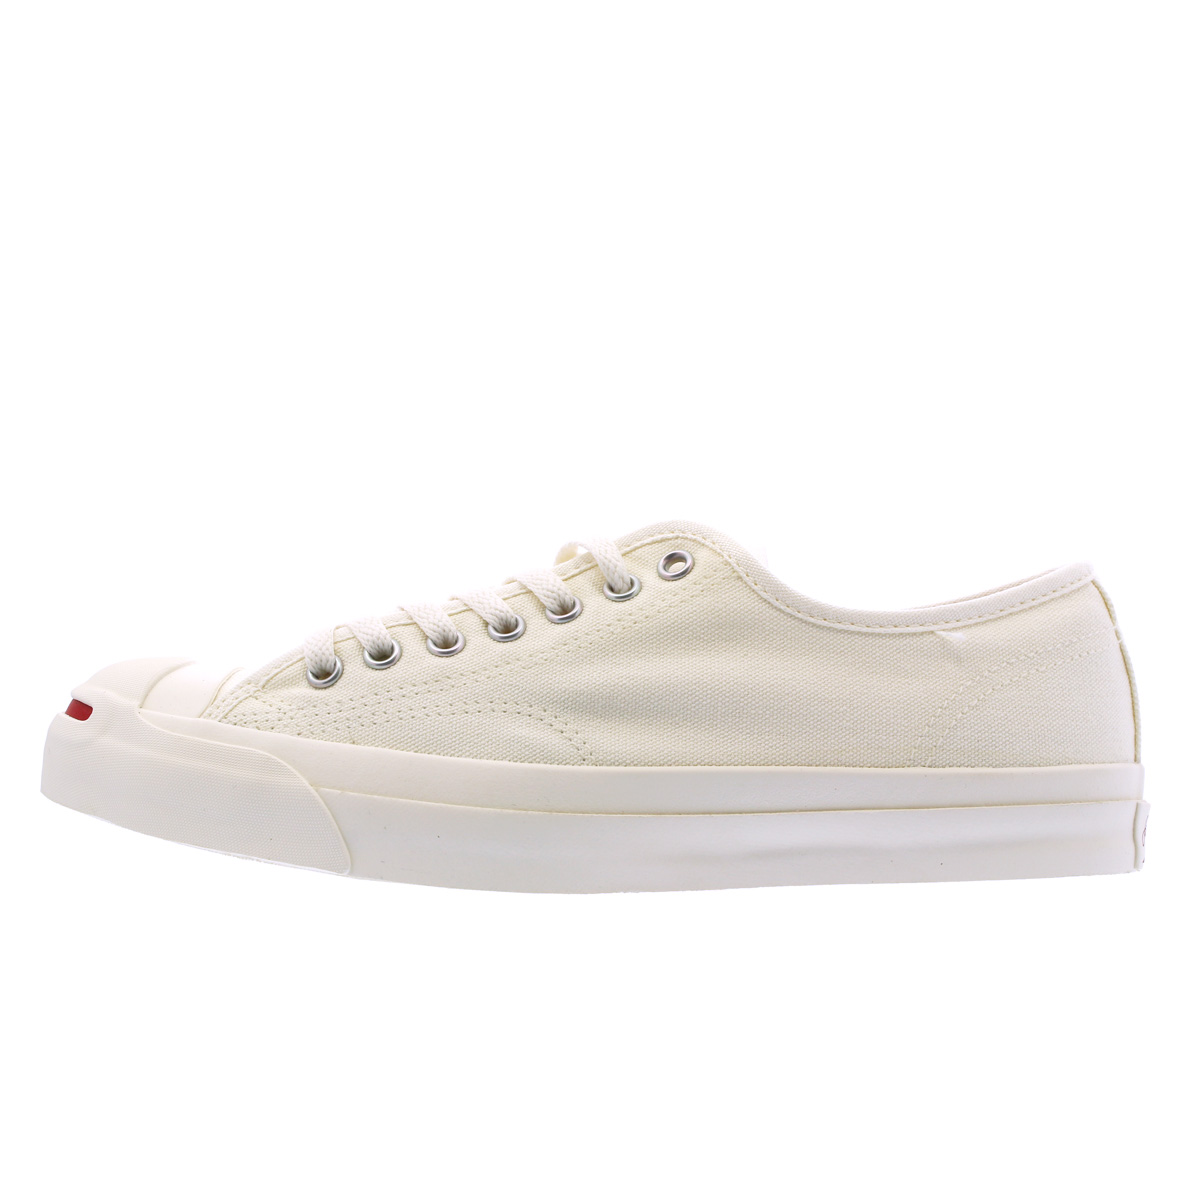 138ec84fd7d73d Jack Purcell White In Engaging Converse Jack Purcell Jack Purcell ...